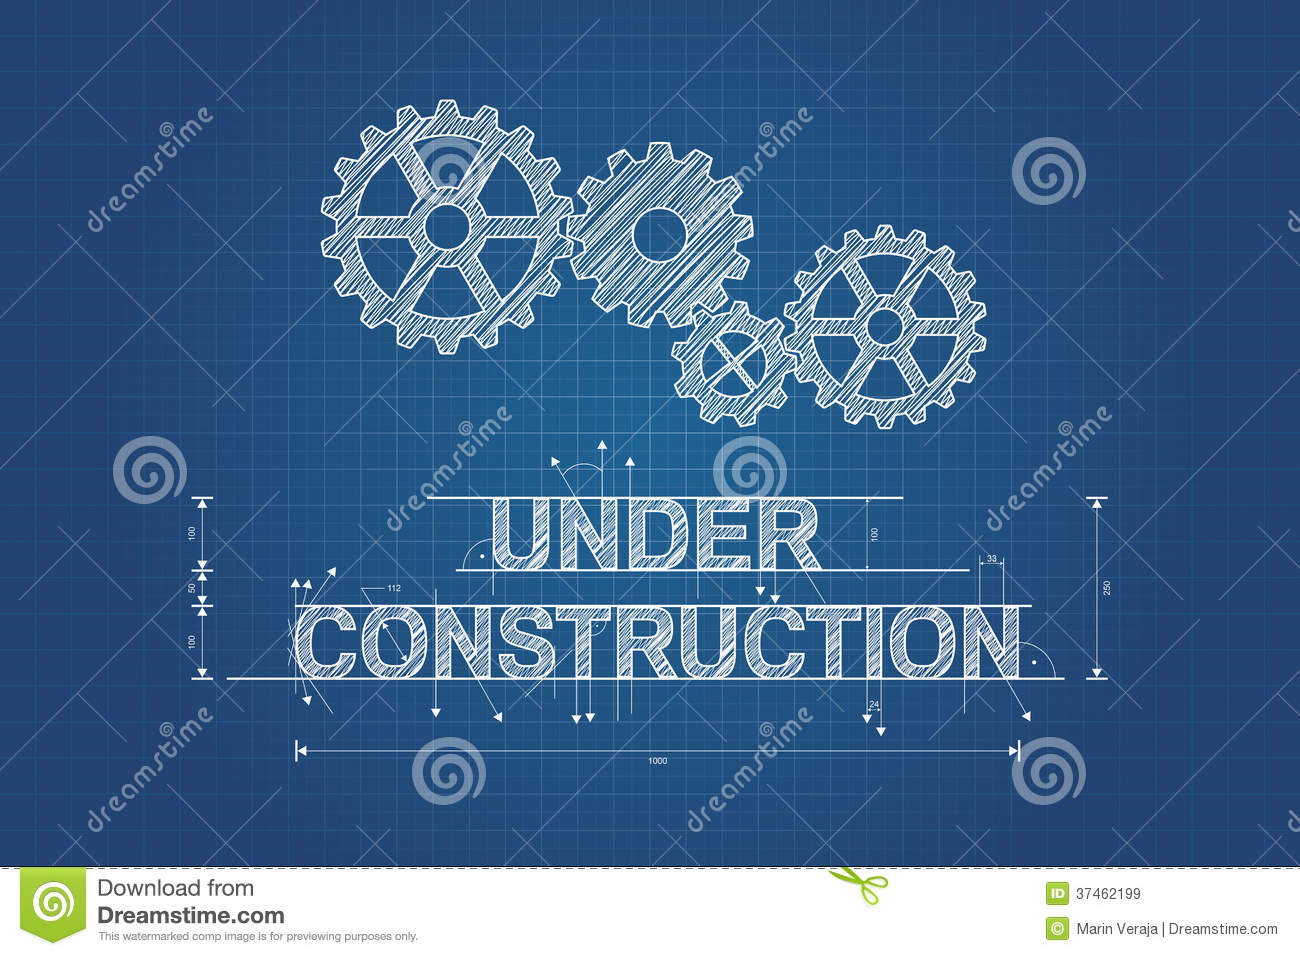 Under construction blueprint technical drawing stock vector under construction blueprint technical drawing malvernweather Image collections